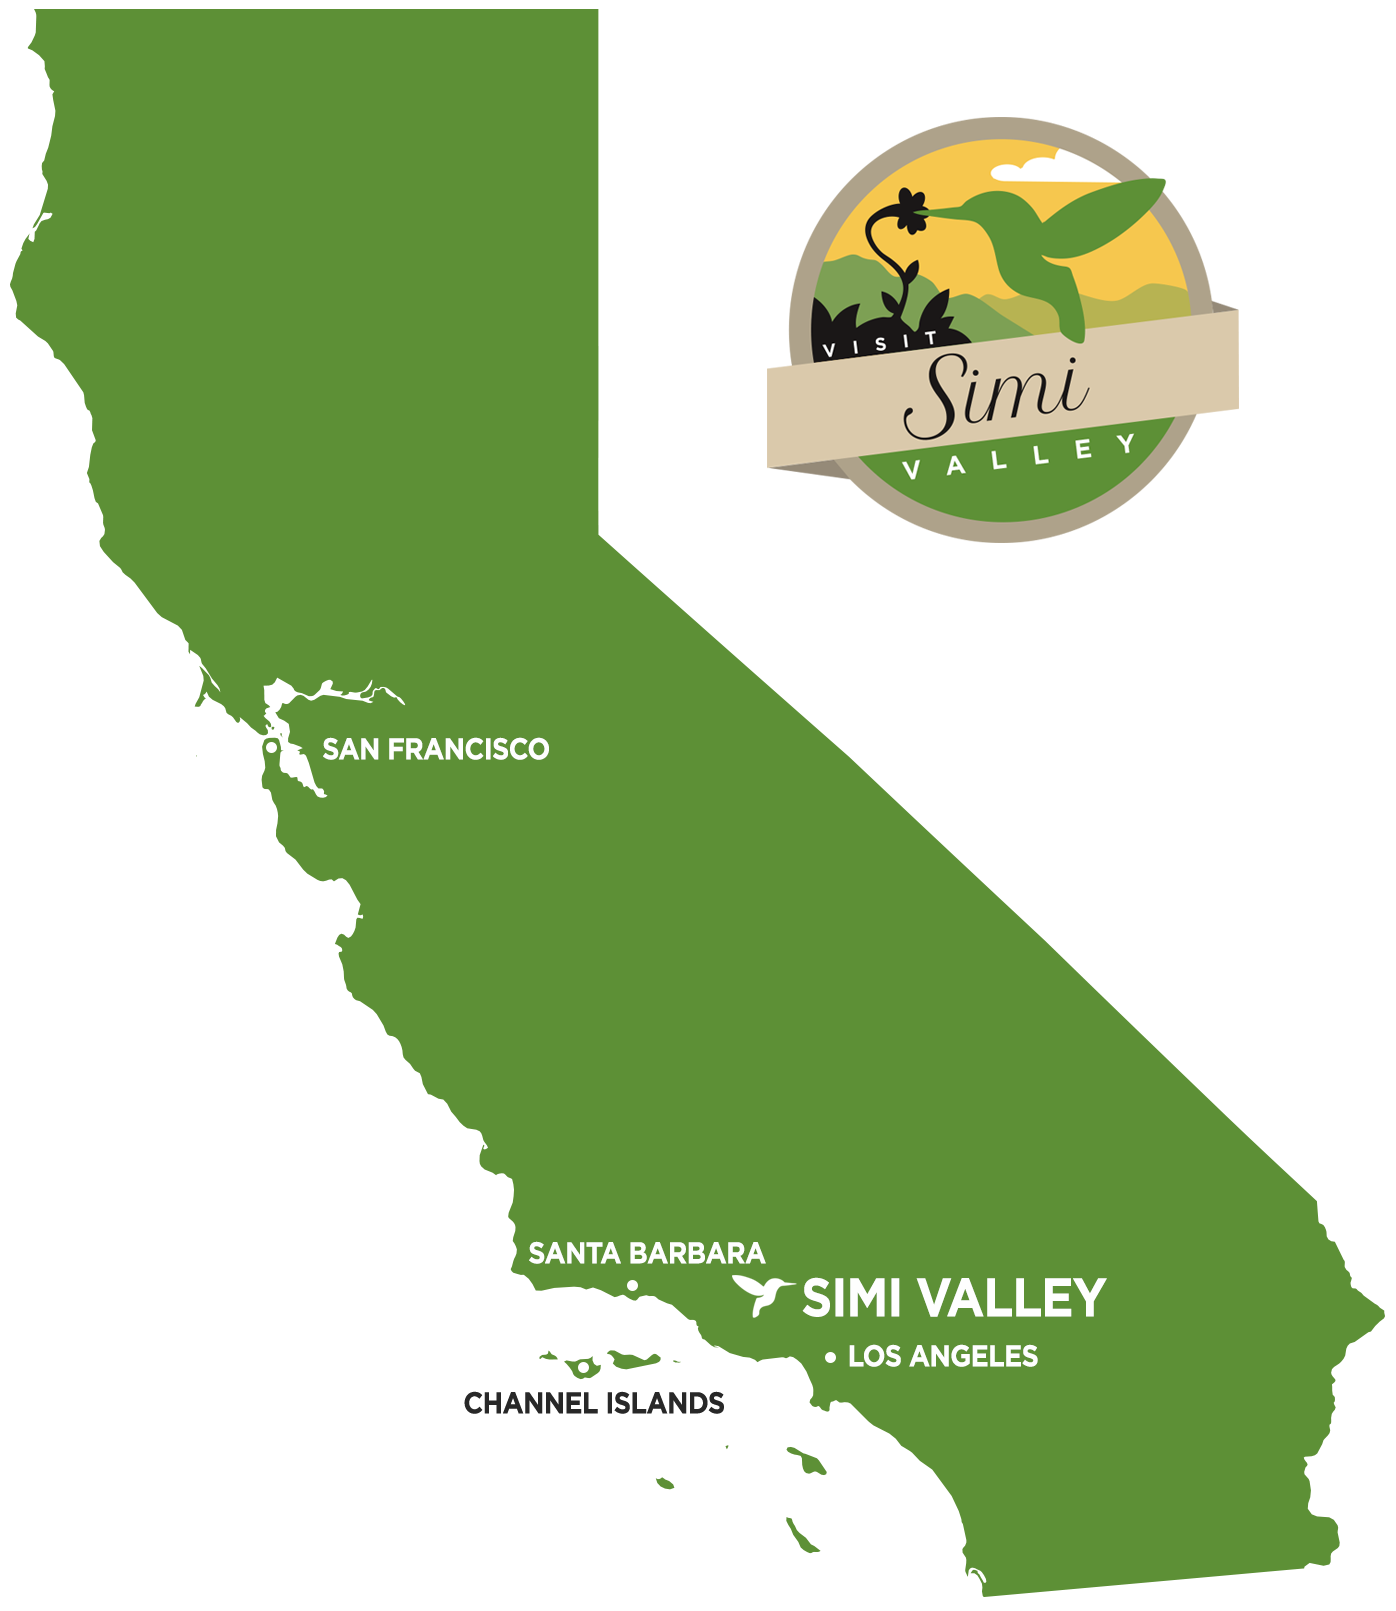 simi valley men Find high quality printed simi valley men's t-shirts at cafepress unique designs created by designers all over the world shop classic t-shirts, long sleeve, super soft tri-blend, baseball tees, football t-shirts and more.